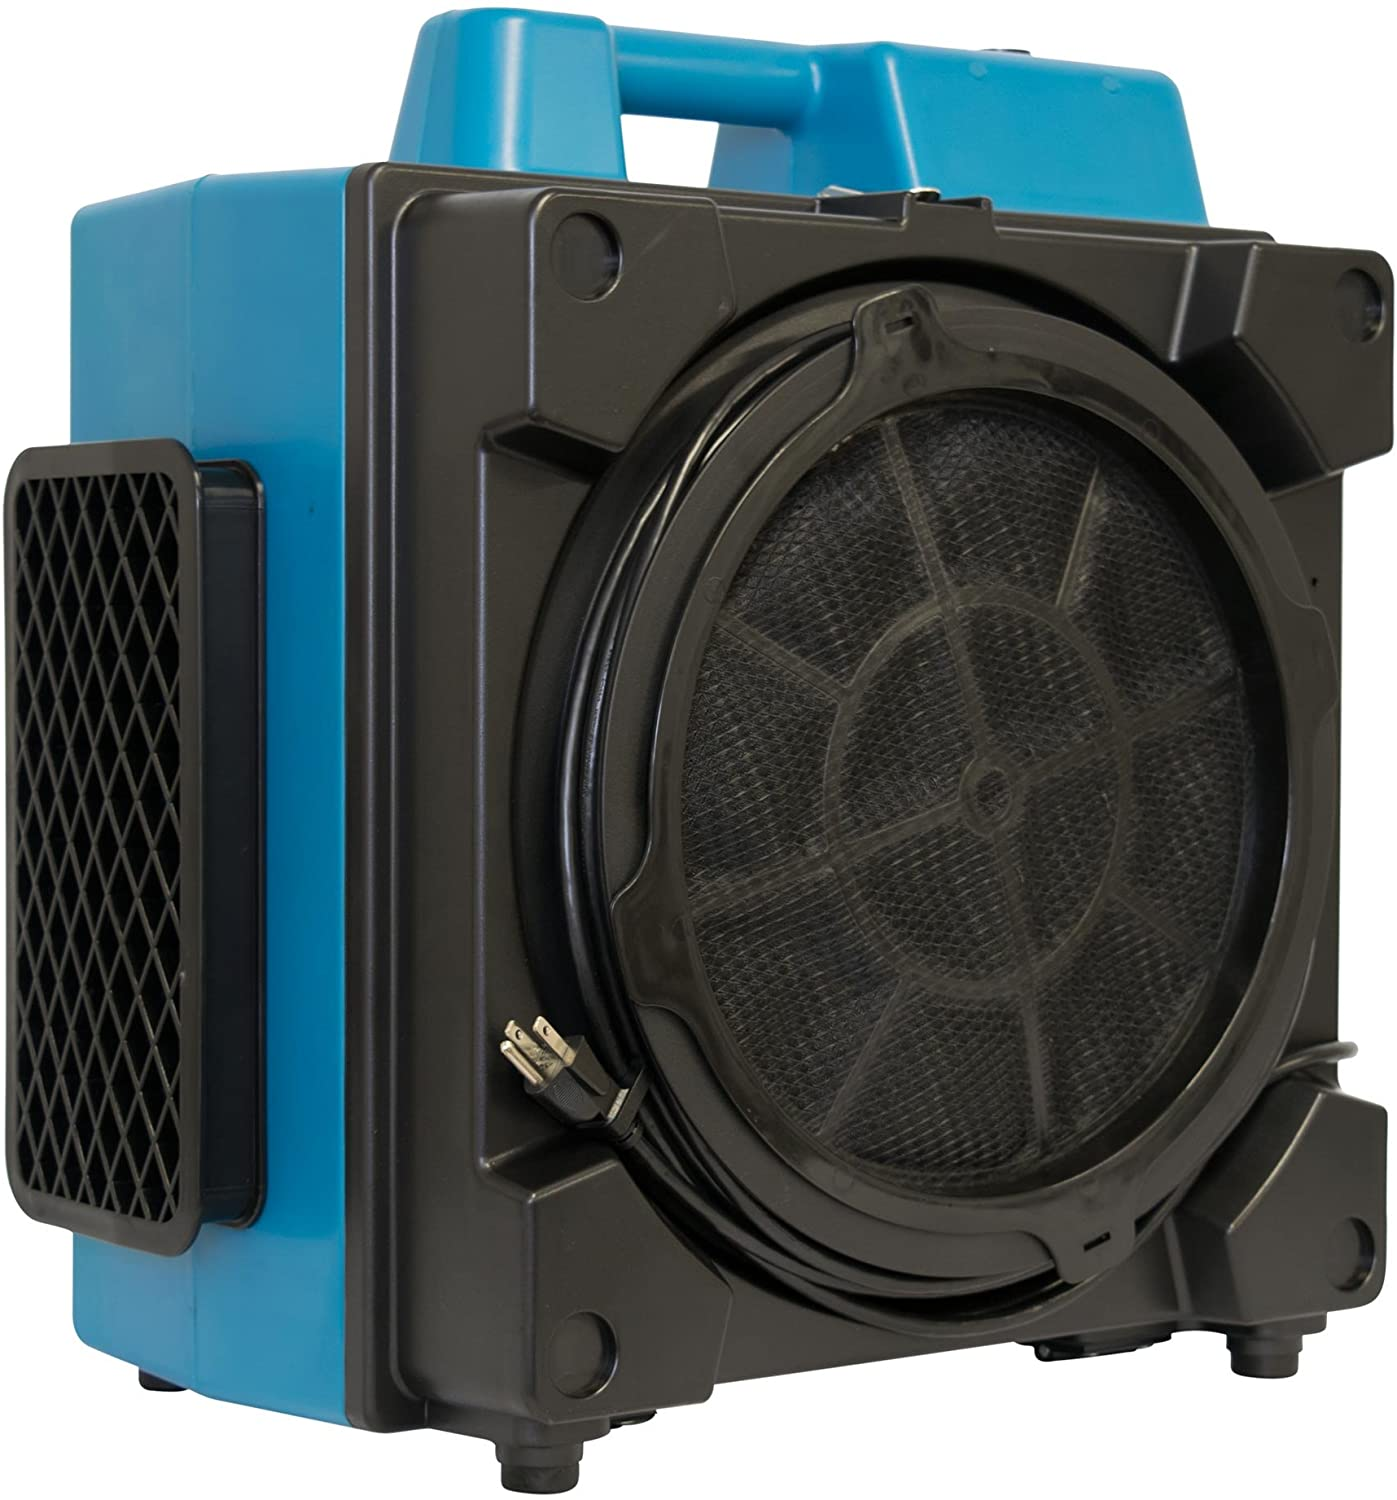 XPOWER X-3380 Pro Clean 4 Stage Filtration System